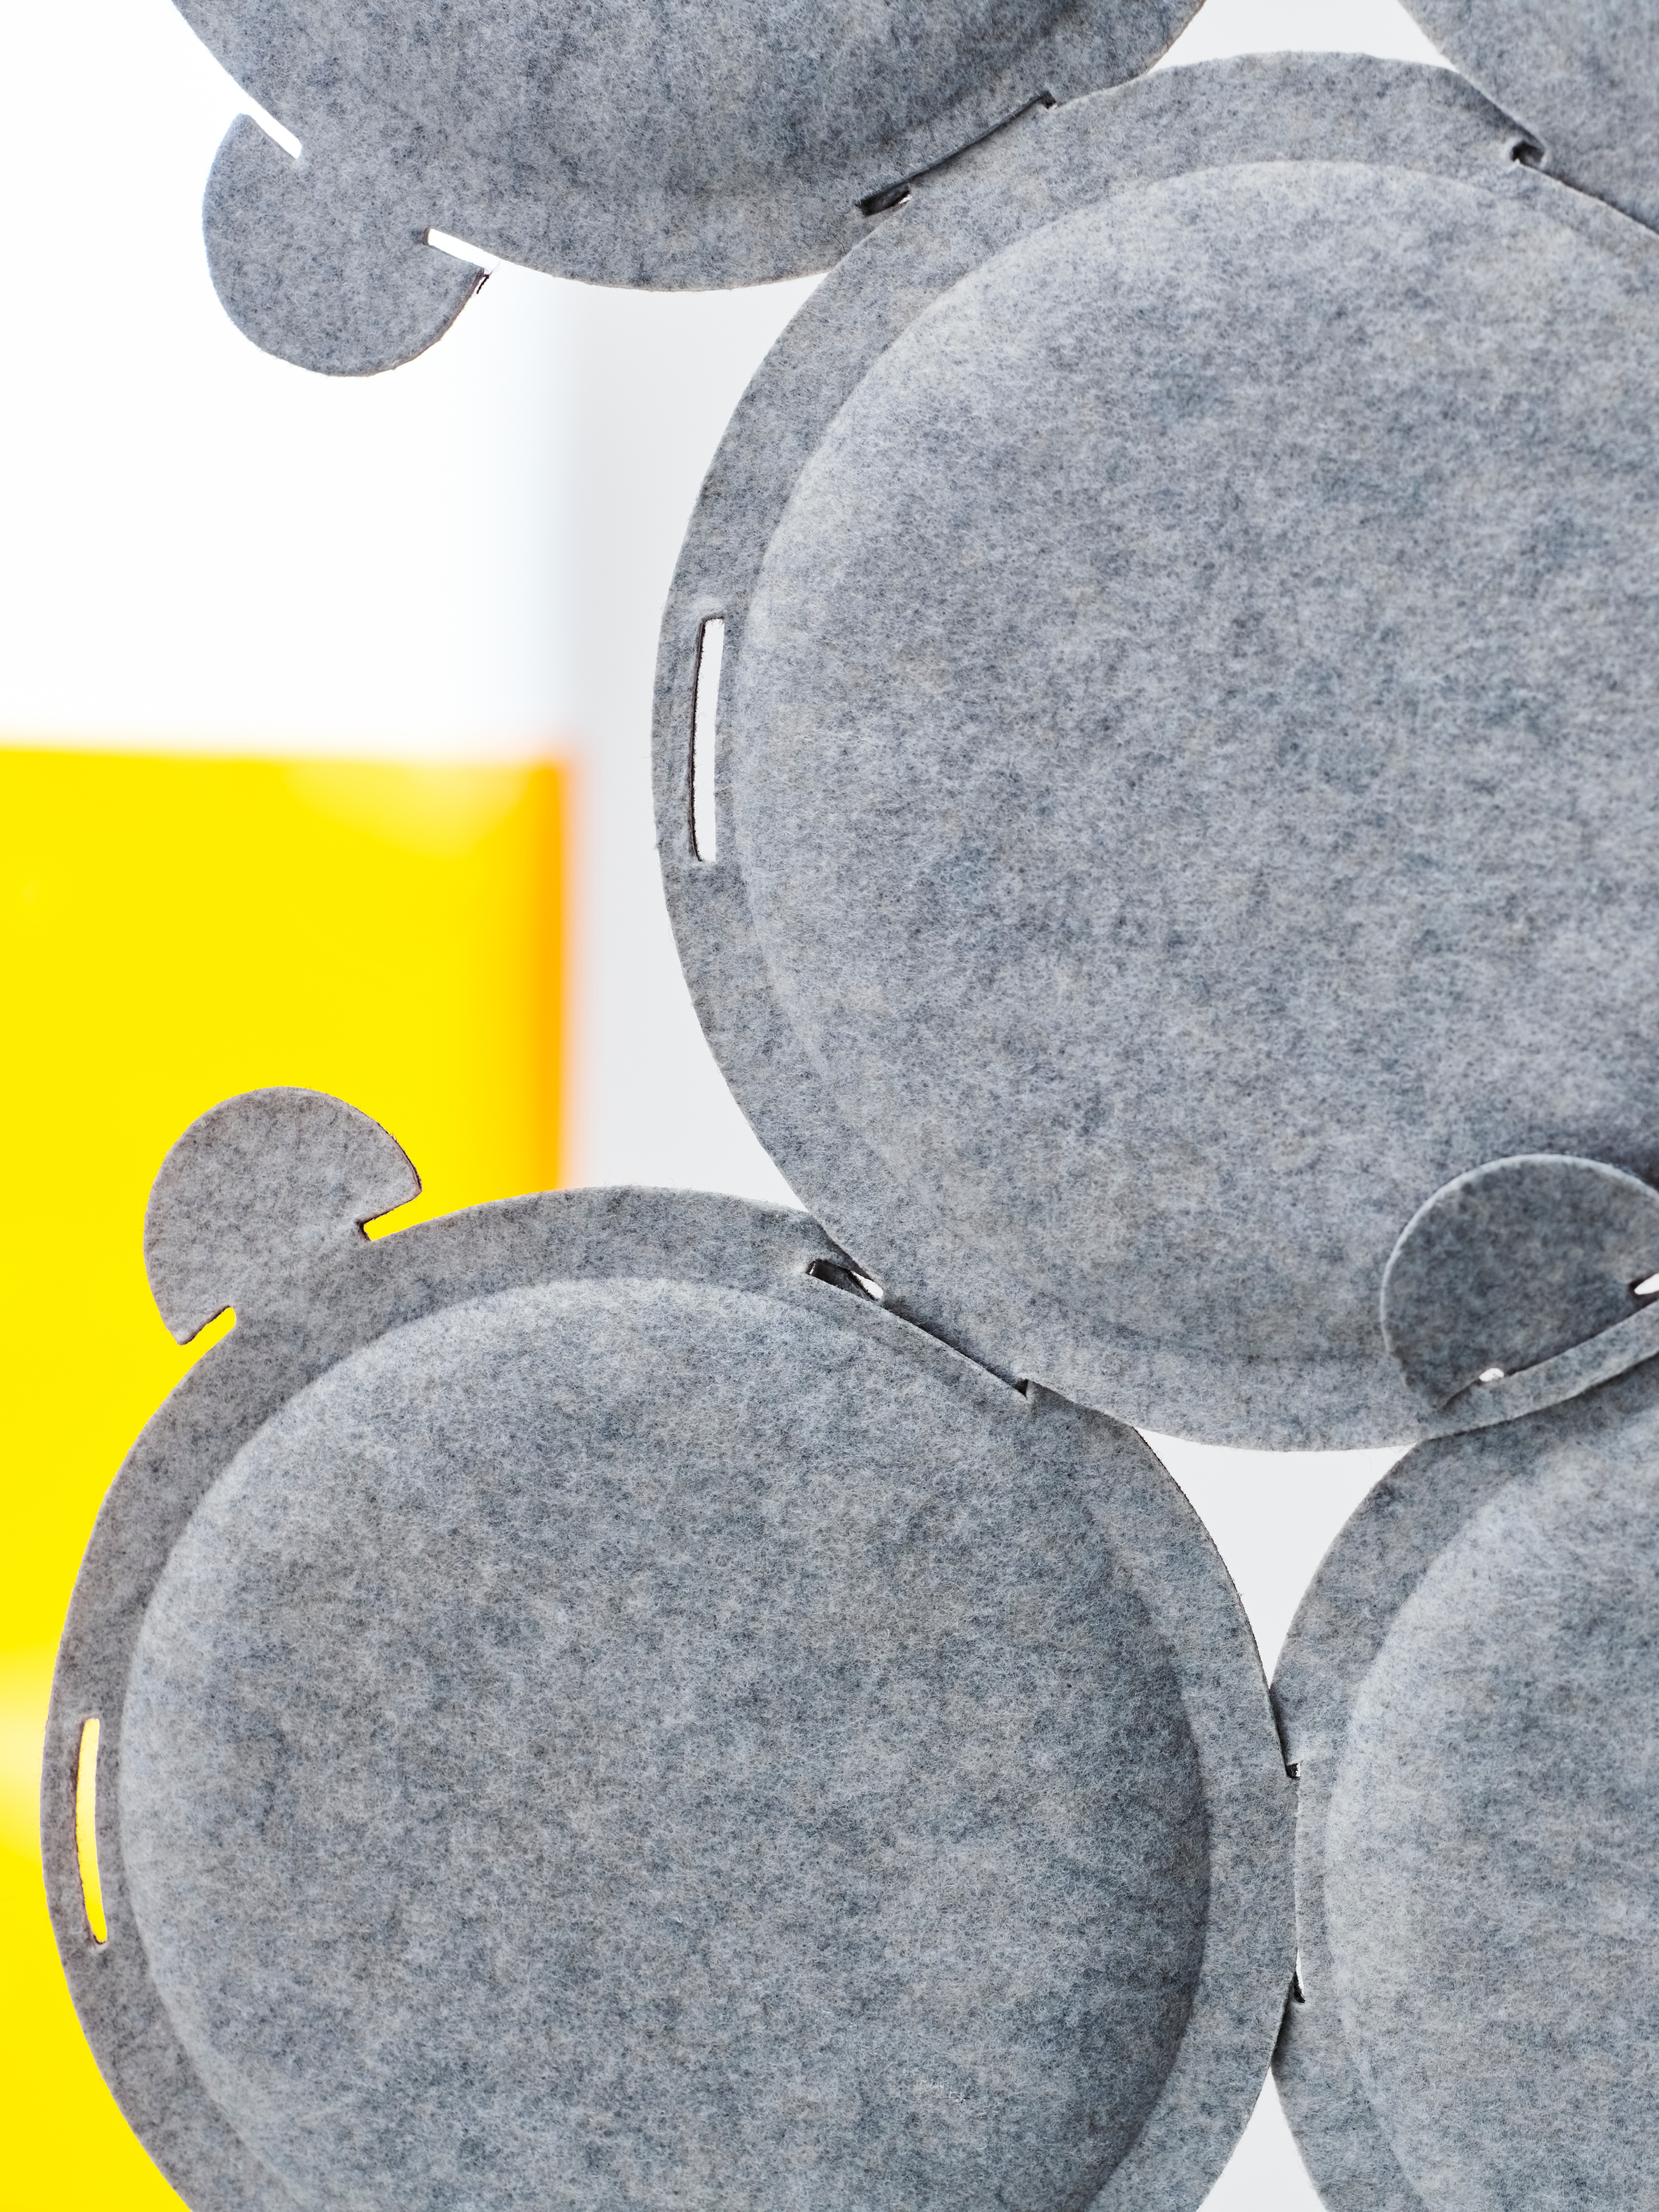 Close-up of ODDLAUG sound absorbent panel in gray, in front of a yellow and gray background.